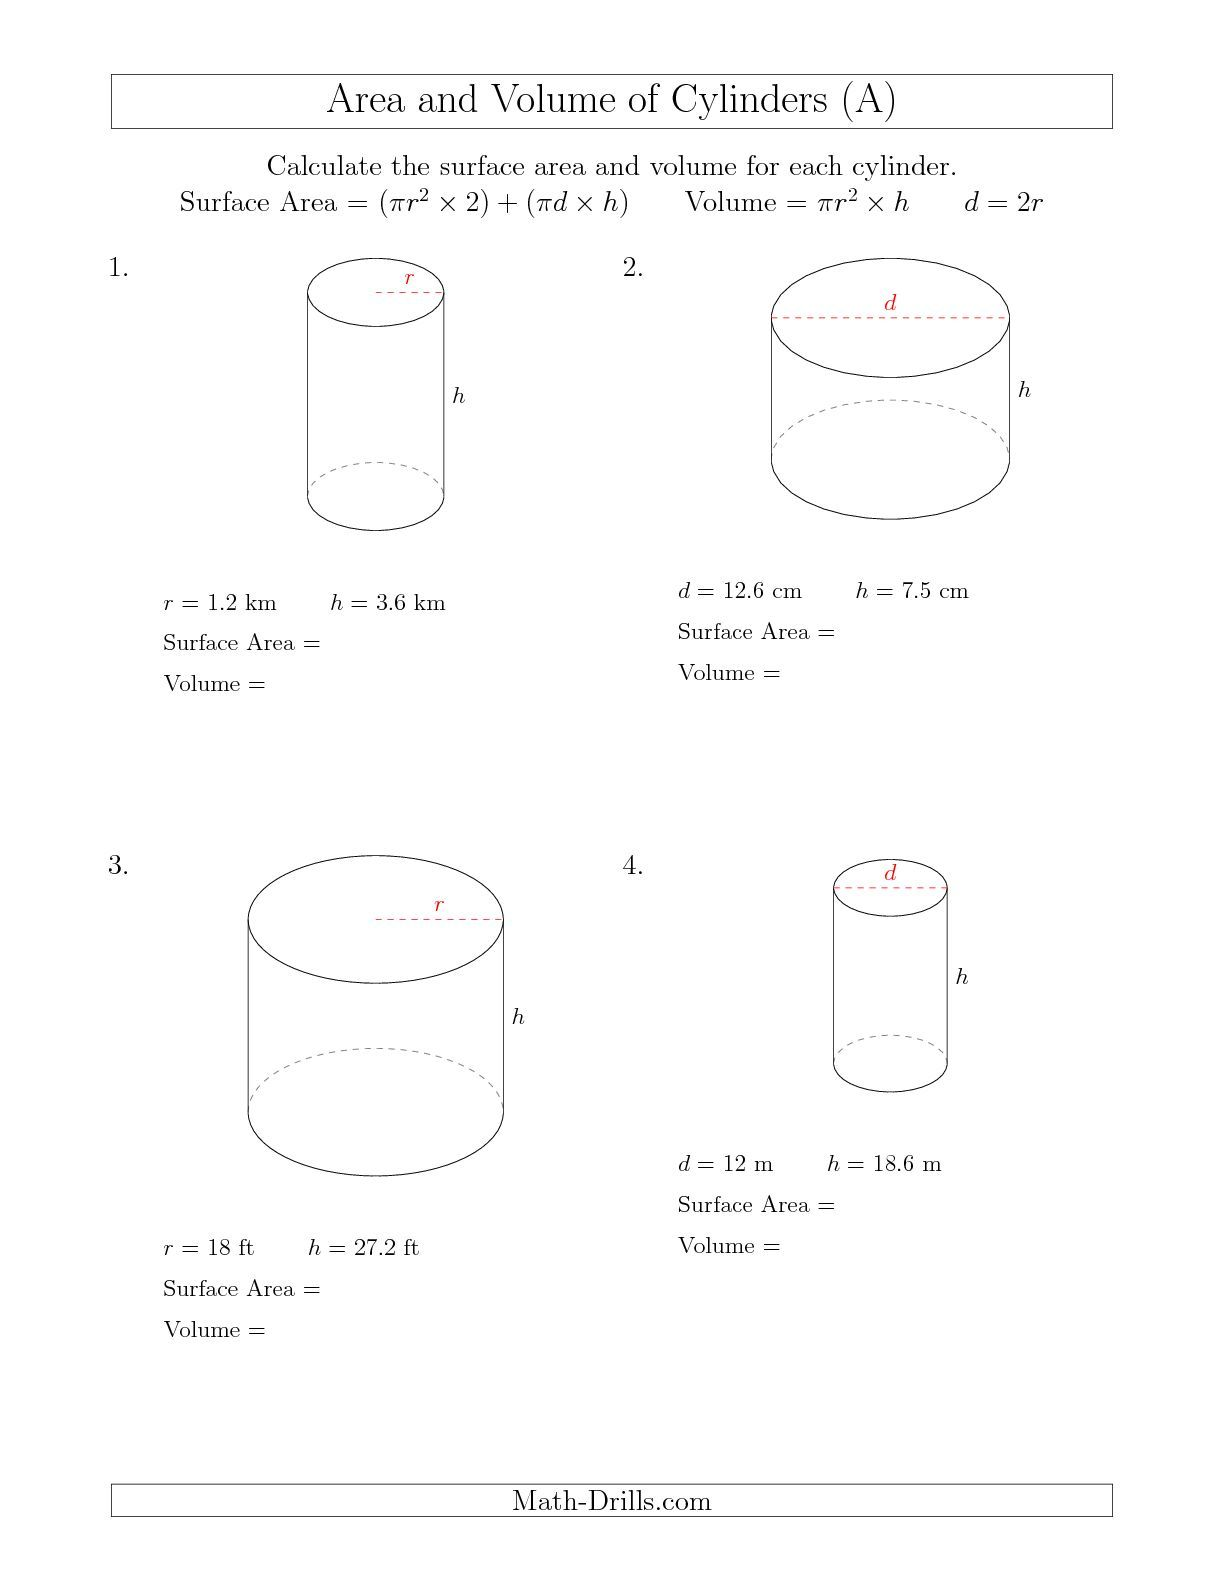 worksheet Volume And Surface Area Worksheets Grade 7 updated 2015 10 28 calculating surface area and volume of cylinders a math worksheet